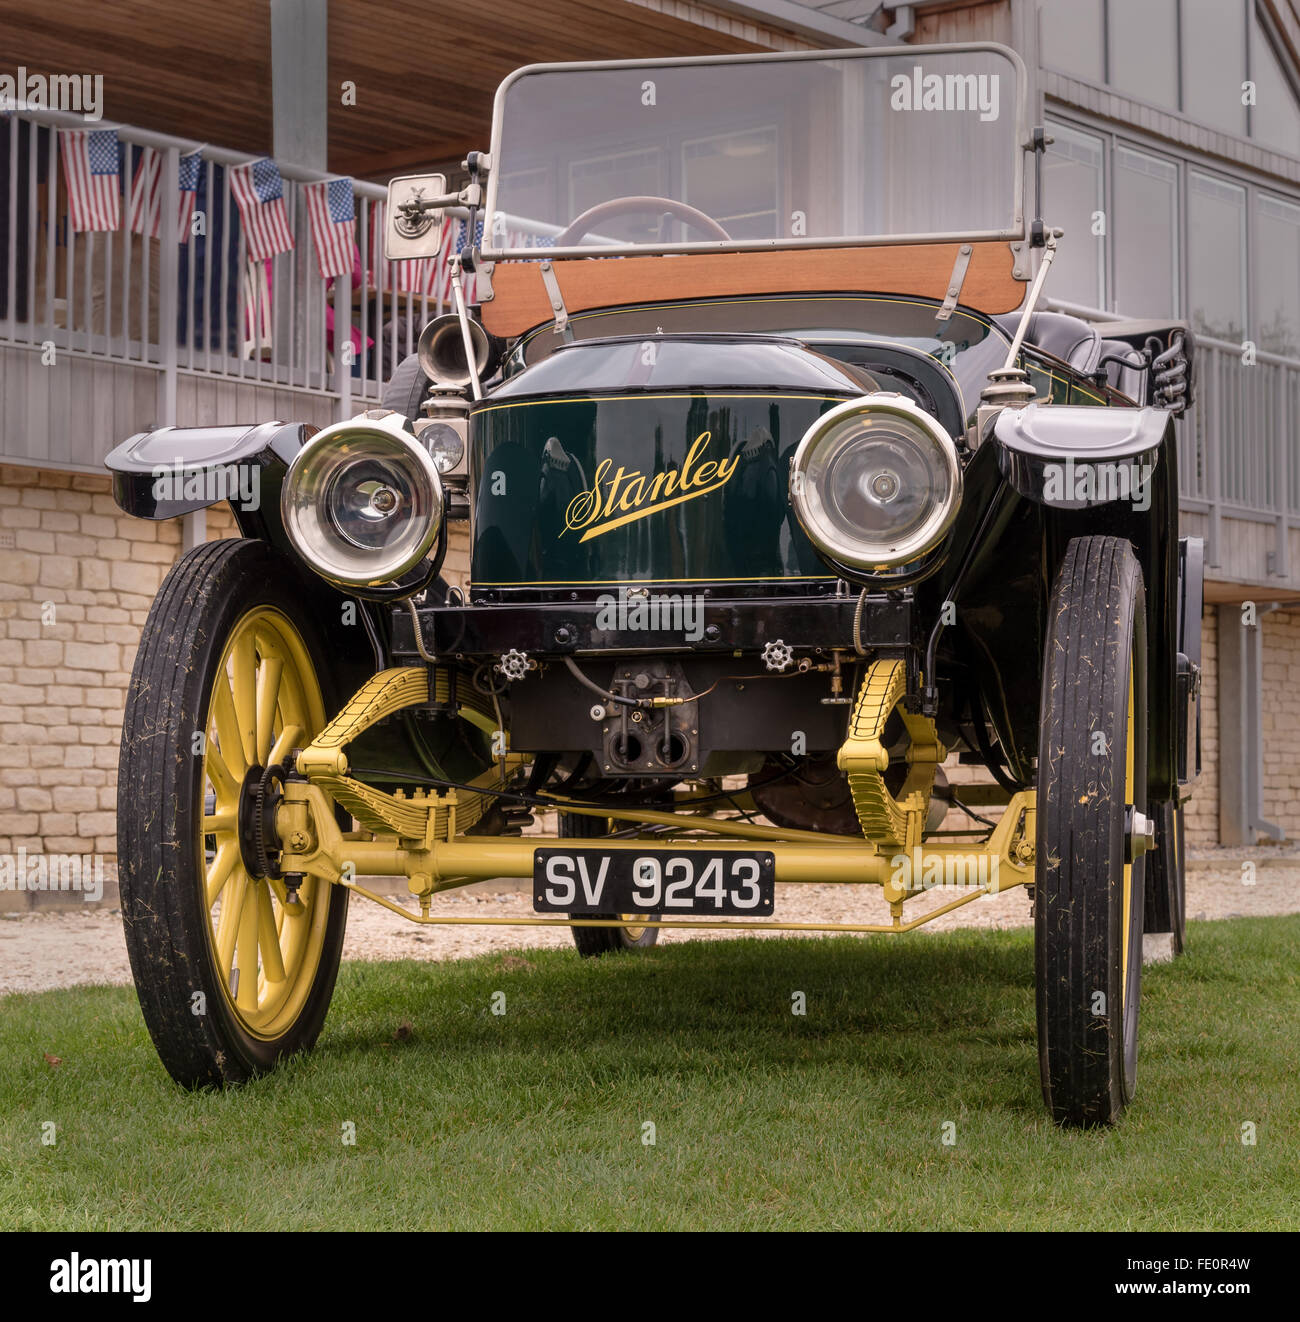 Stanley Steamer Car >> Stanley Steamer Car Stock Photos Stanley Steamer Car Stock Images